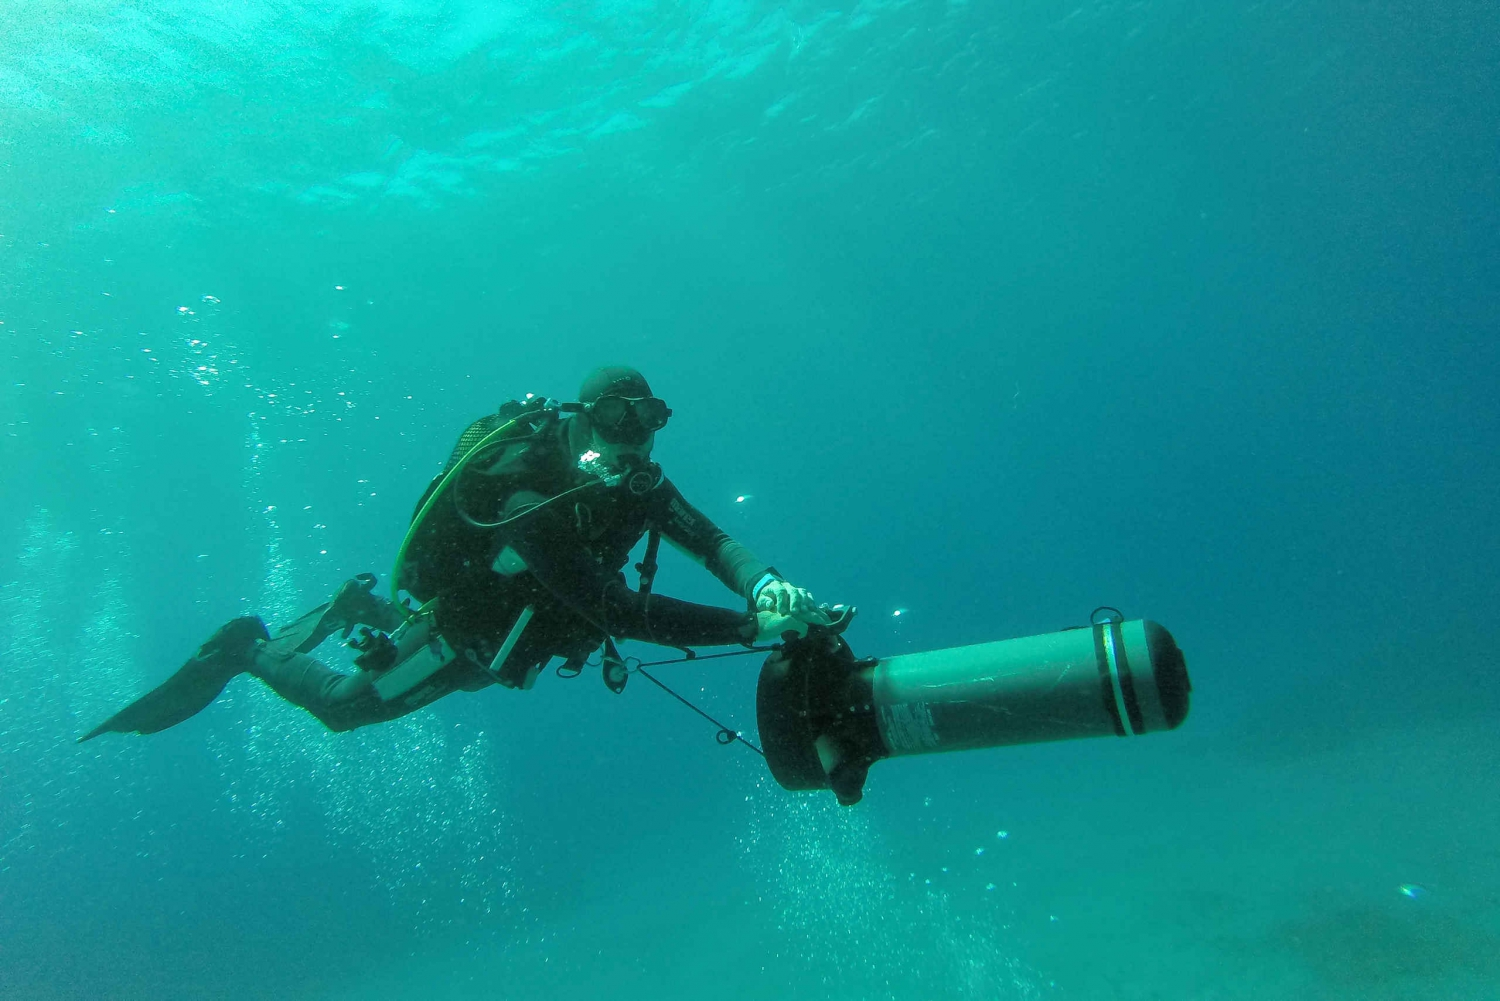 Diving with Underwater Scooter (DPV) in Tenerife